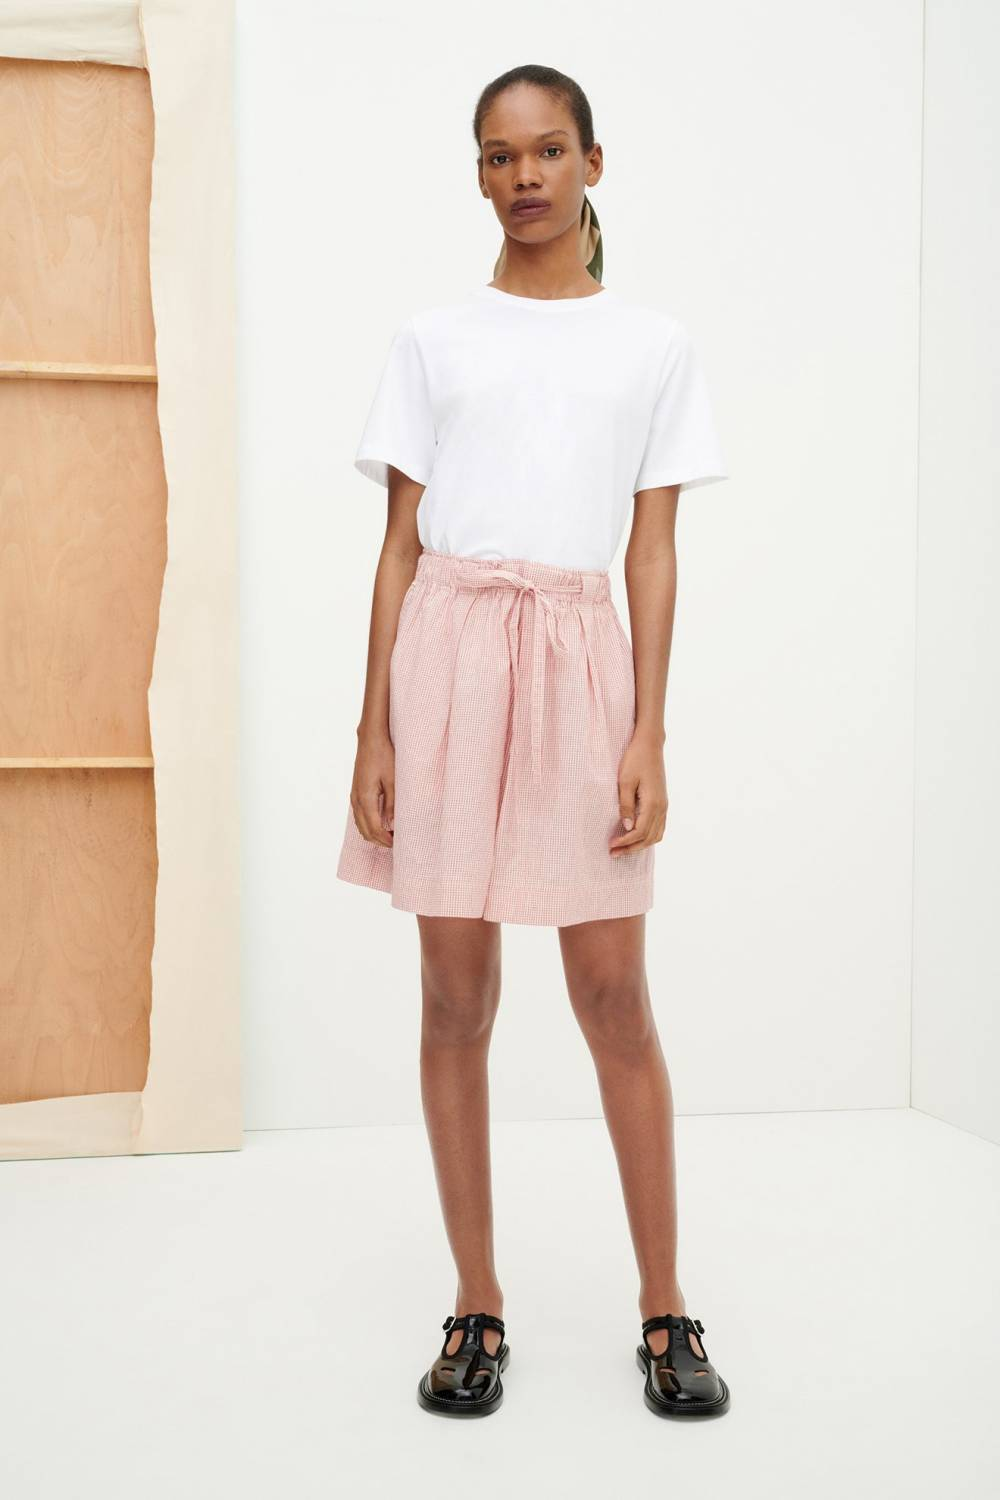 kowtow shorts investment clothing pieces